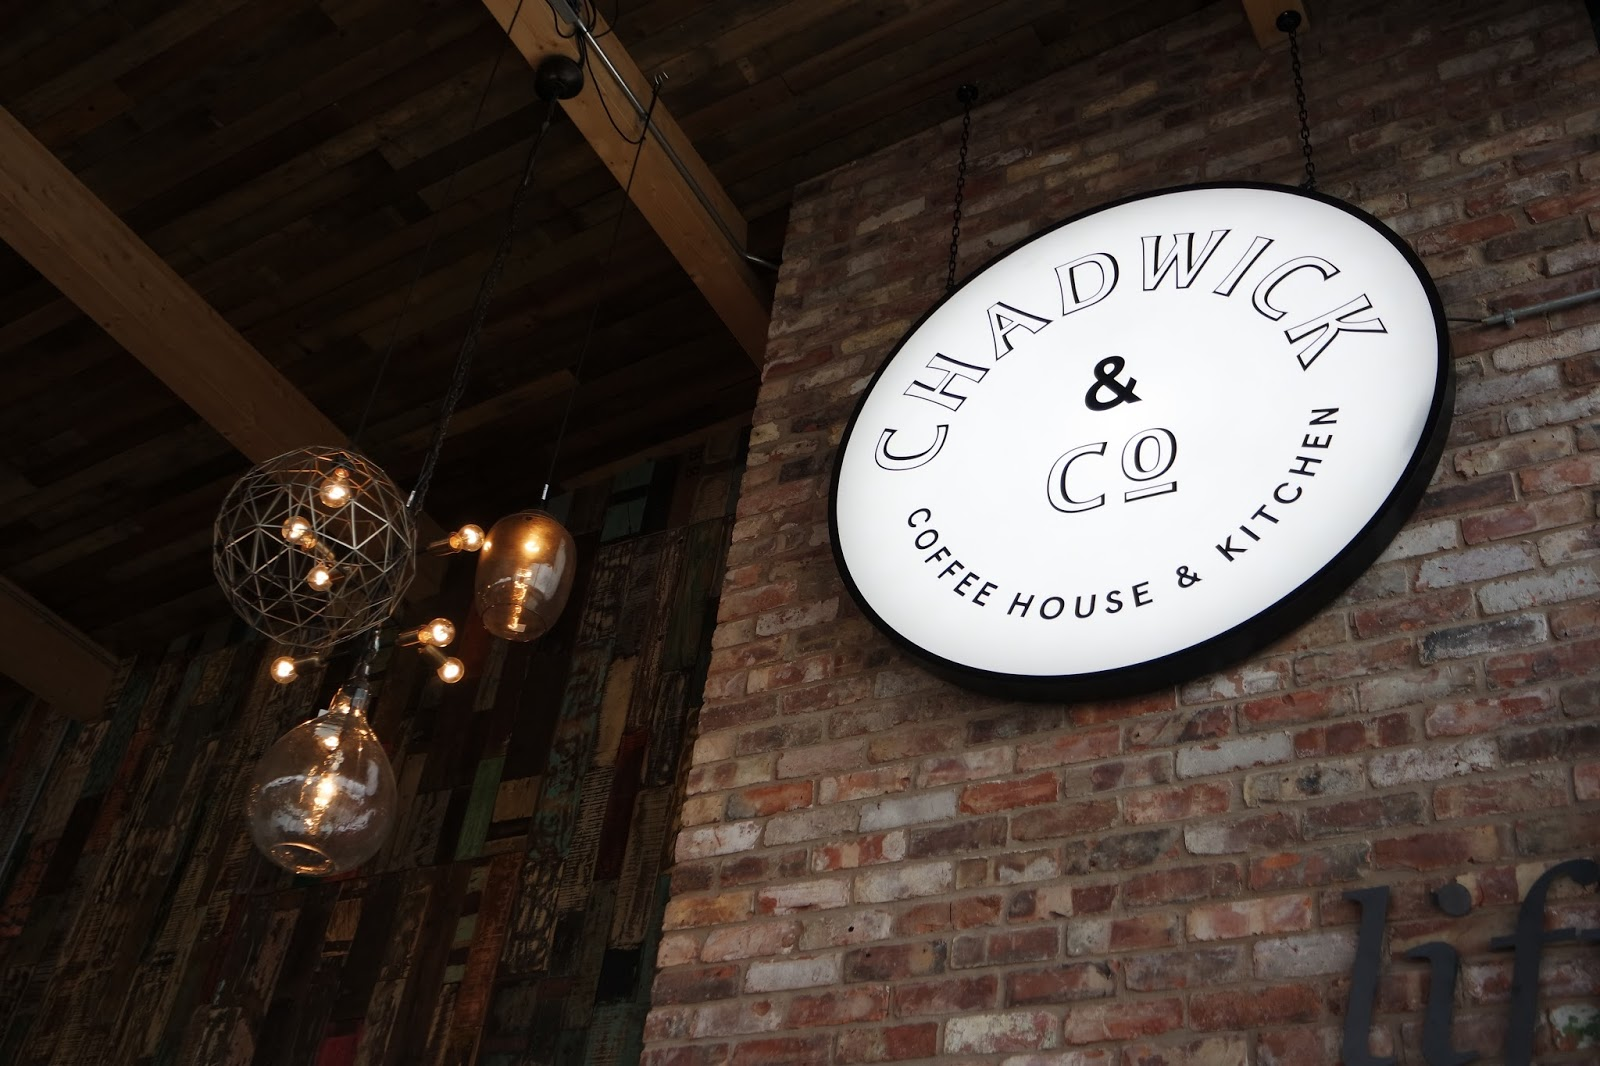 Chadwick & Co - Coffee House and Kitchen in Barker and Stonehouse, Teesside Park